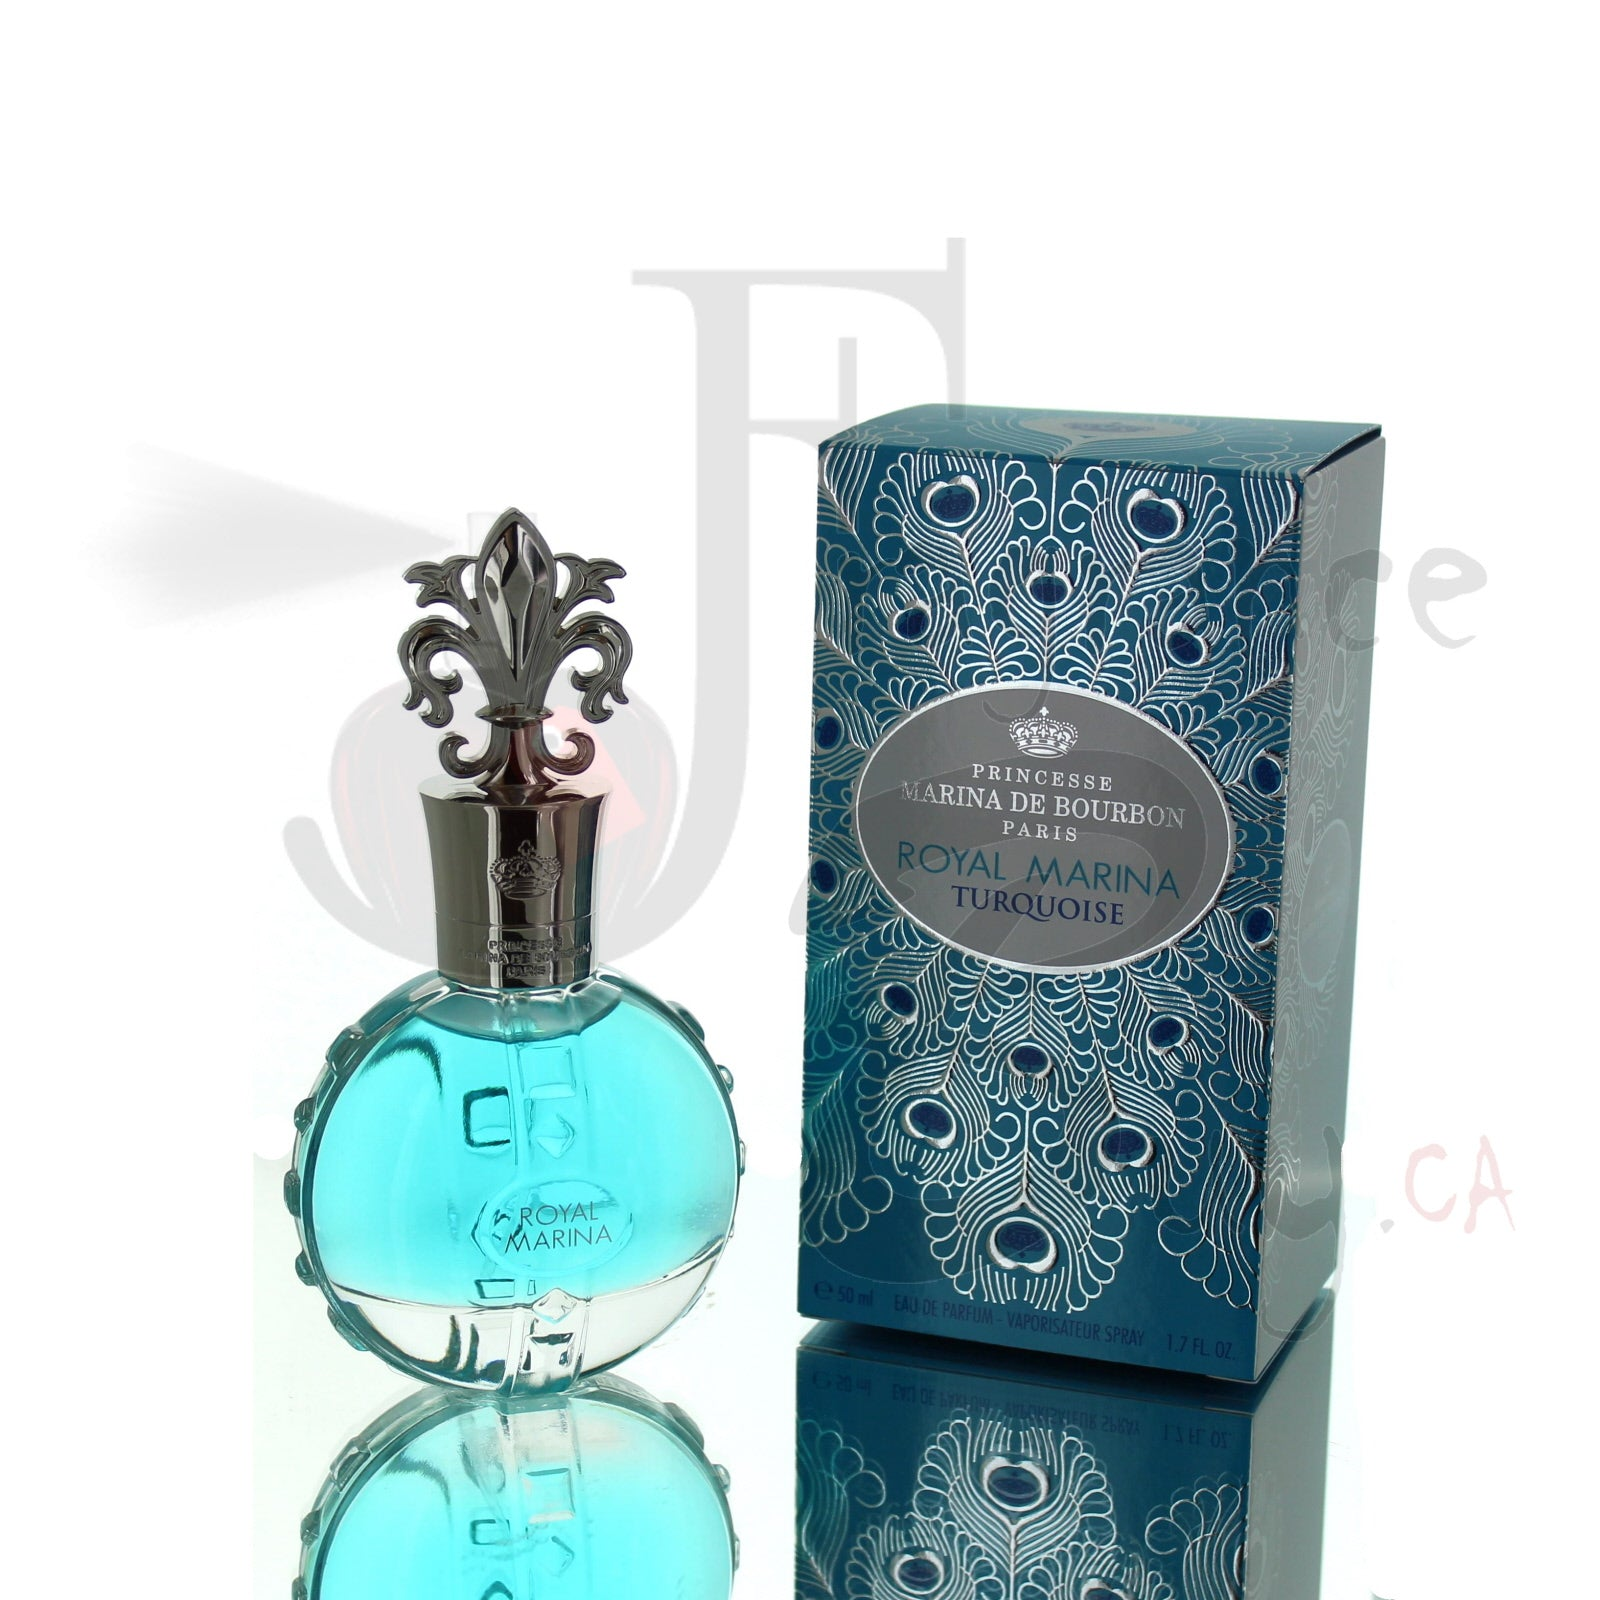 Marina De Bourbon Royal Marina Turquoise For Woman